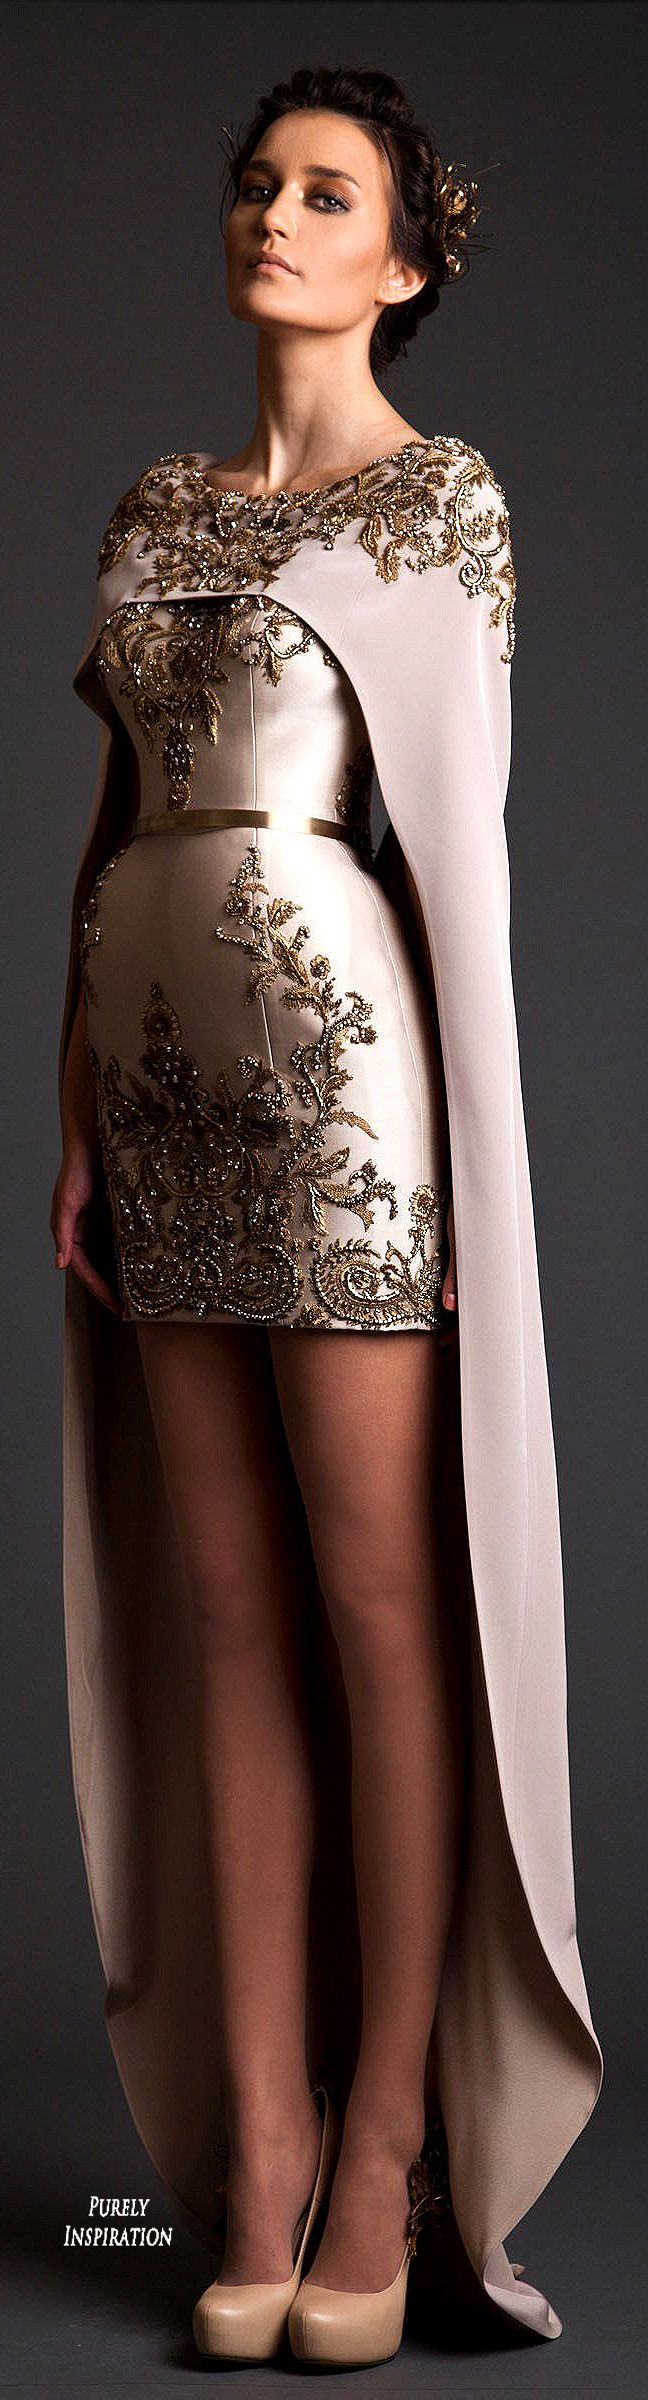 Krikor Jabotian SS2014 Haute Couture Women's Fashion | Purely Inspiration